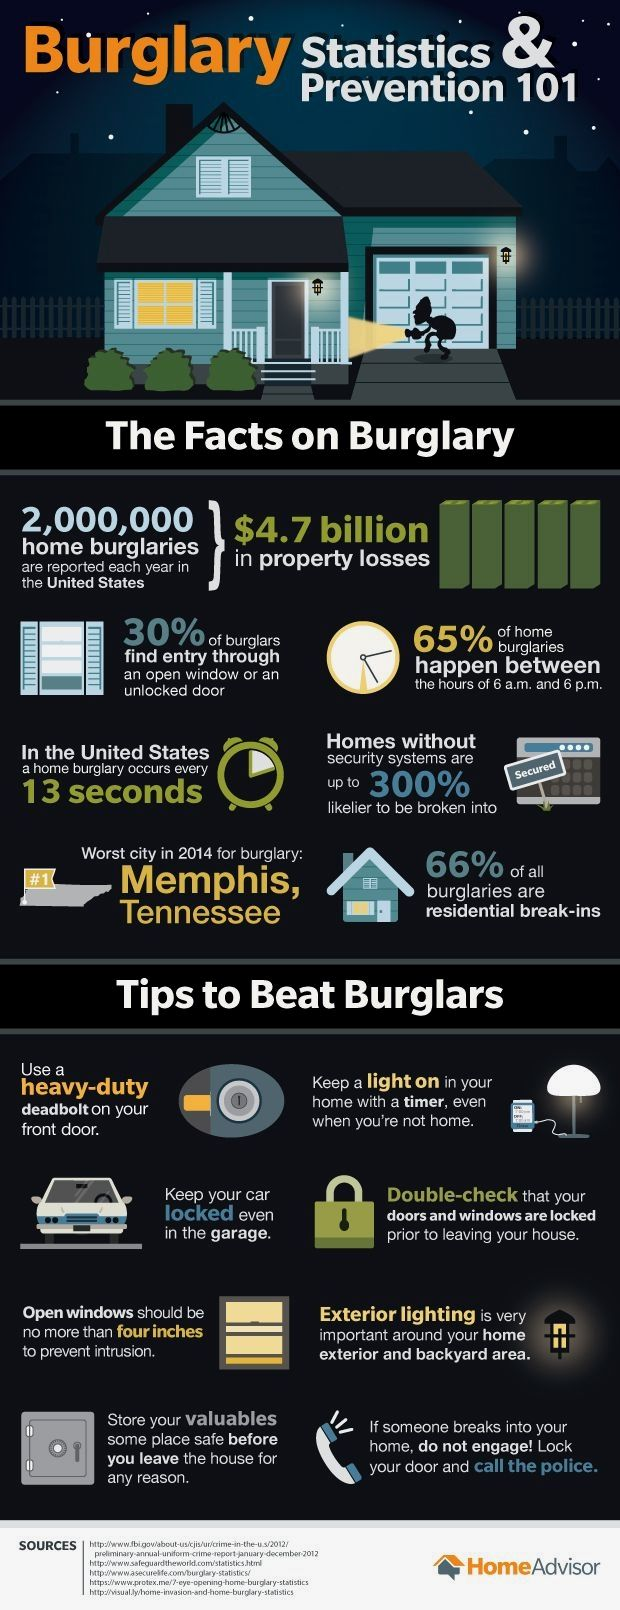 Do Panic Rooms Provide Home Security In 2020 Burglary Prevention Home Security Tips Home Safety